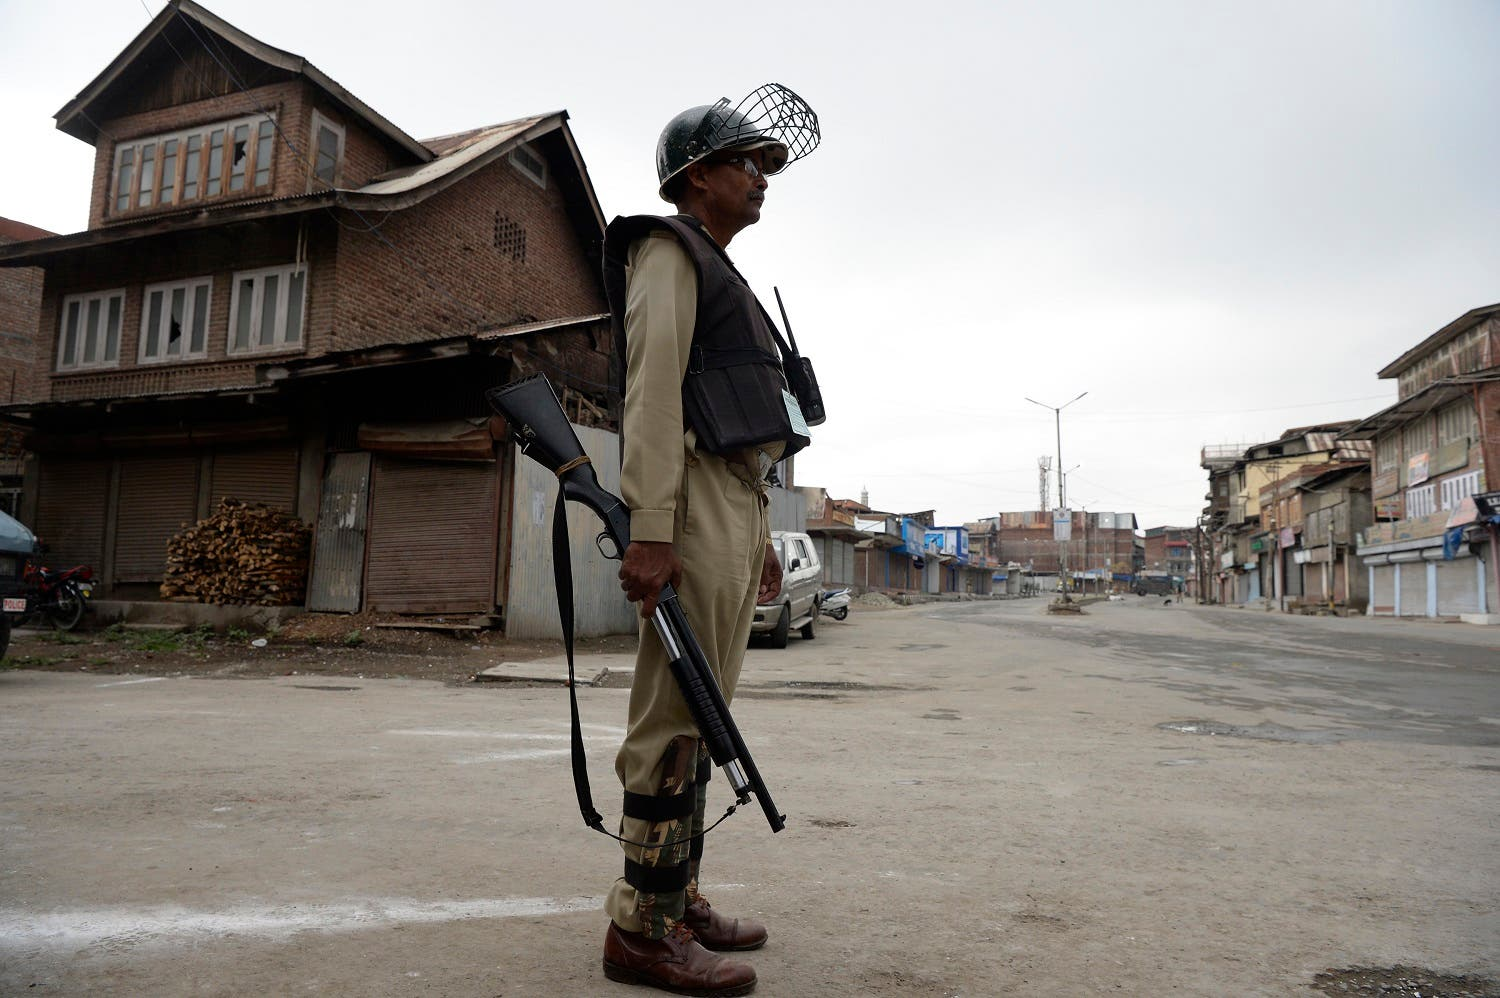 According to Jammu and Kashmir Police records in 2013, 31 local youths joined militancy, the number for 2015 jumped to 66 and 88 in 2016. (AFP)